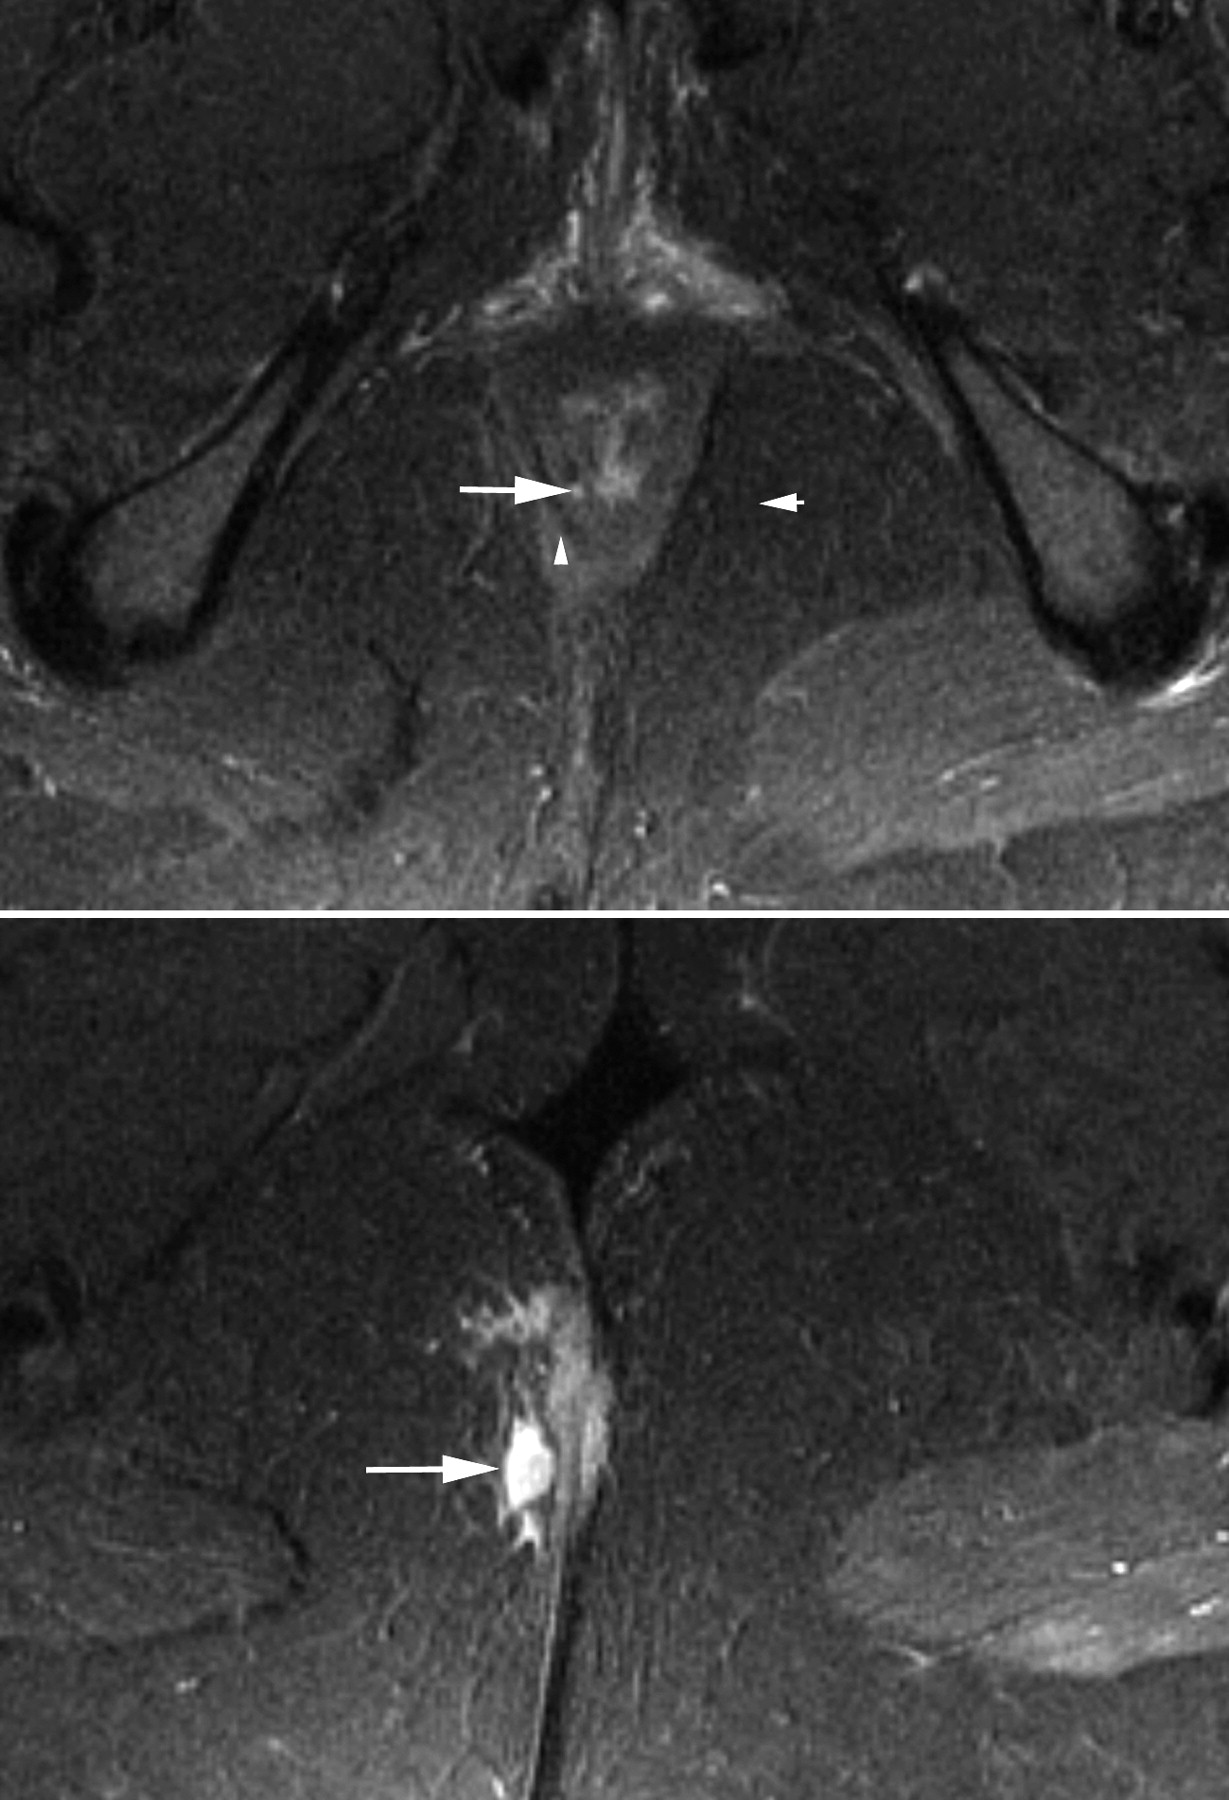 Investigating perianal pain of uncertain cause | The BMJ